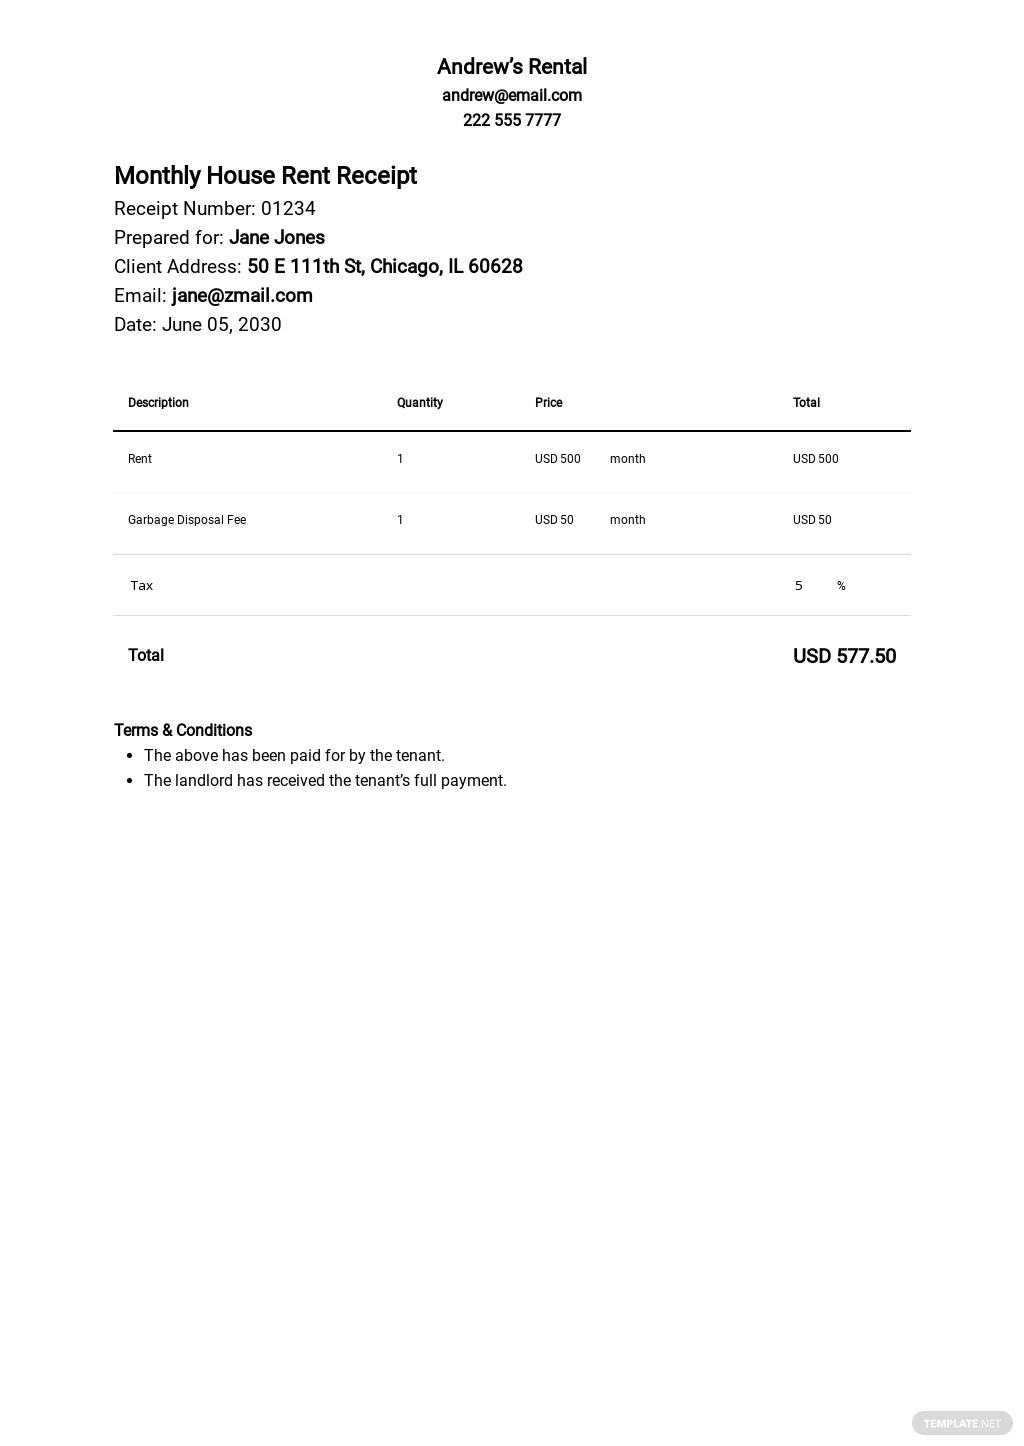 Free Monthly House Rent Receipt Template.jpe